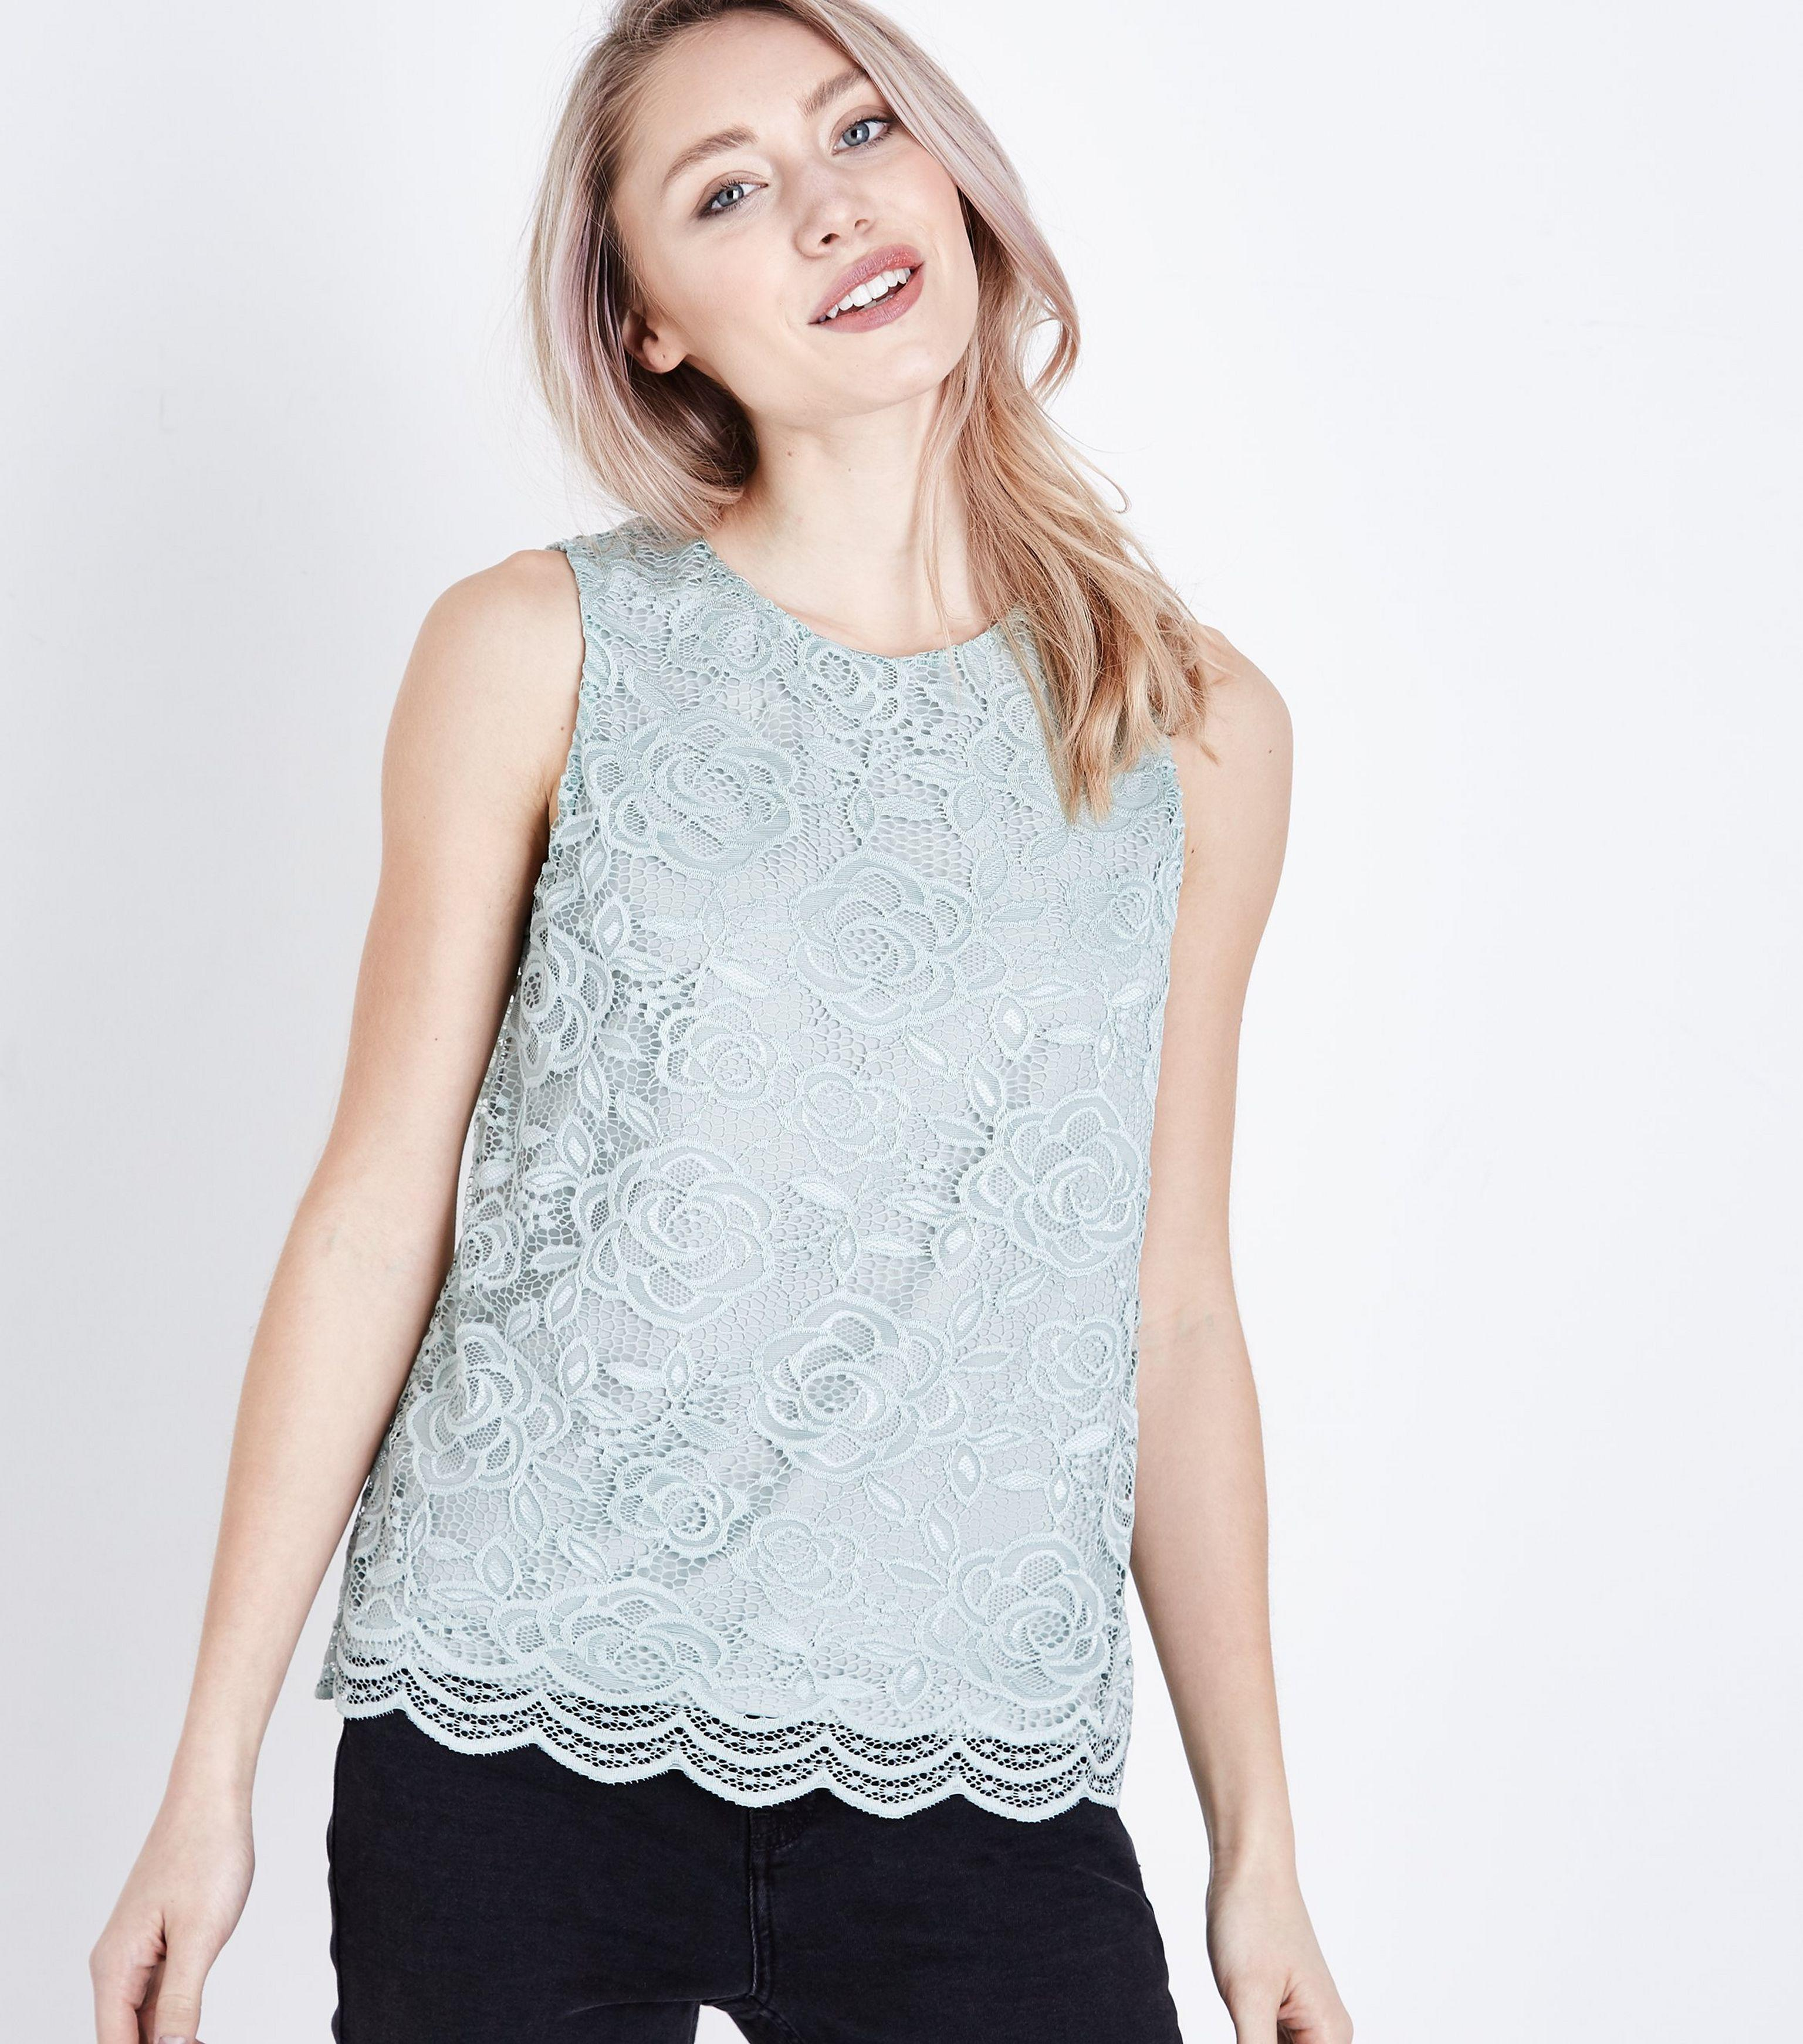 a622923f1ec64 New Look Petite Green Floral Lace Sleeveless Top in Green - Lyst